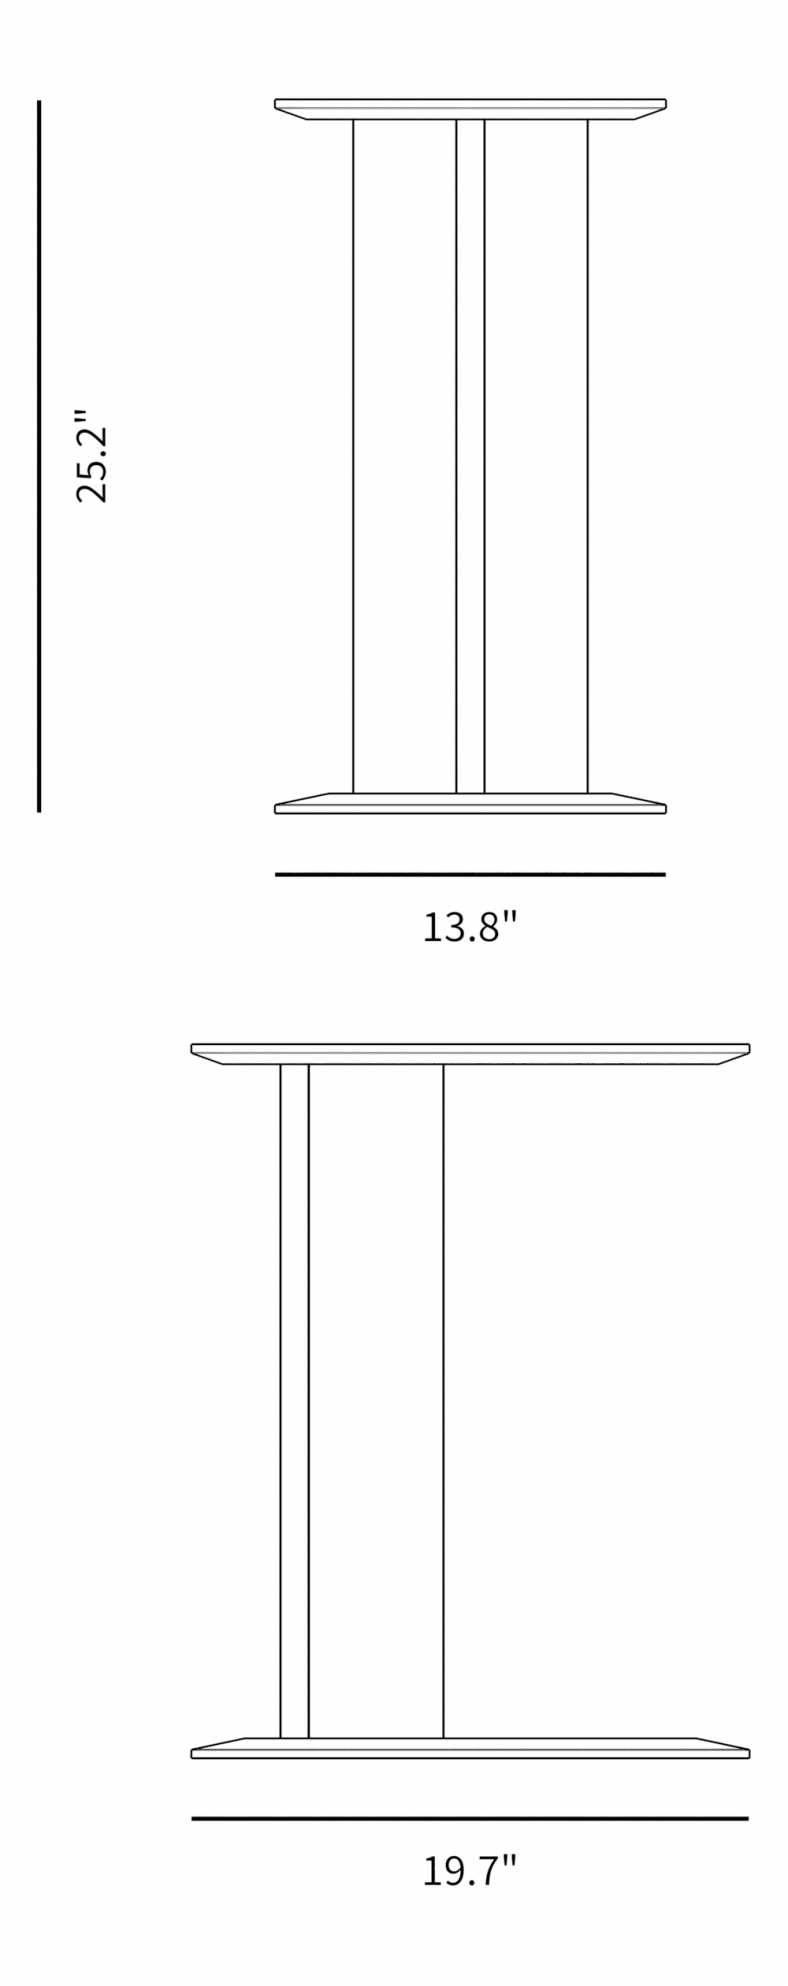 Dimensions for Jutka Side Table